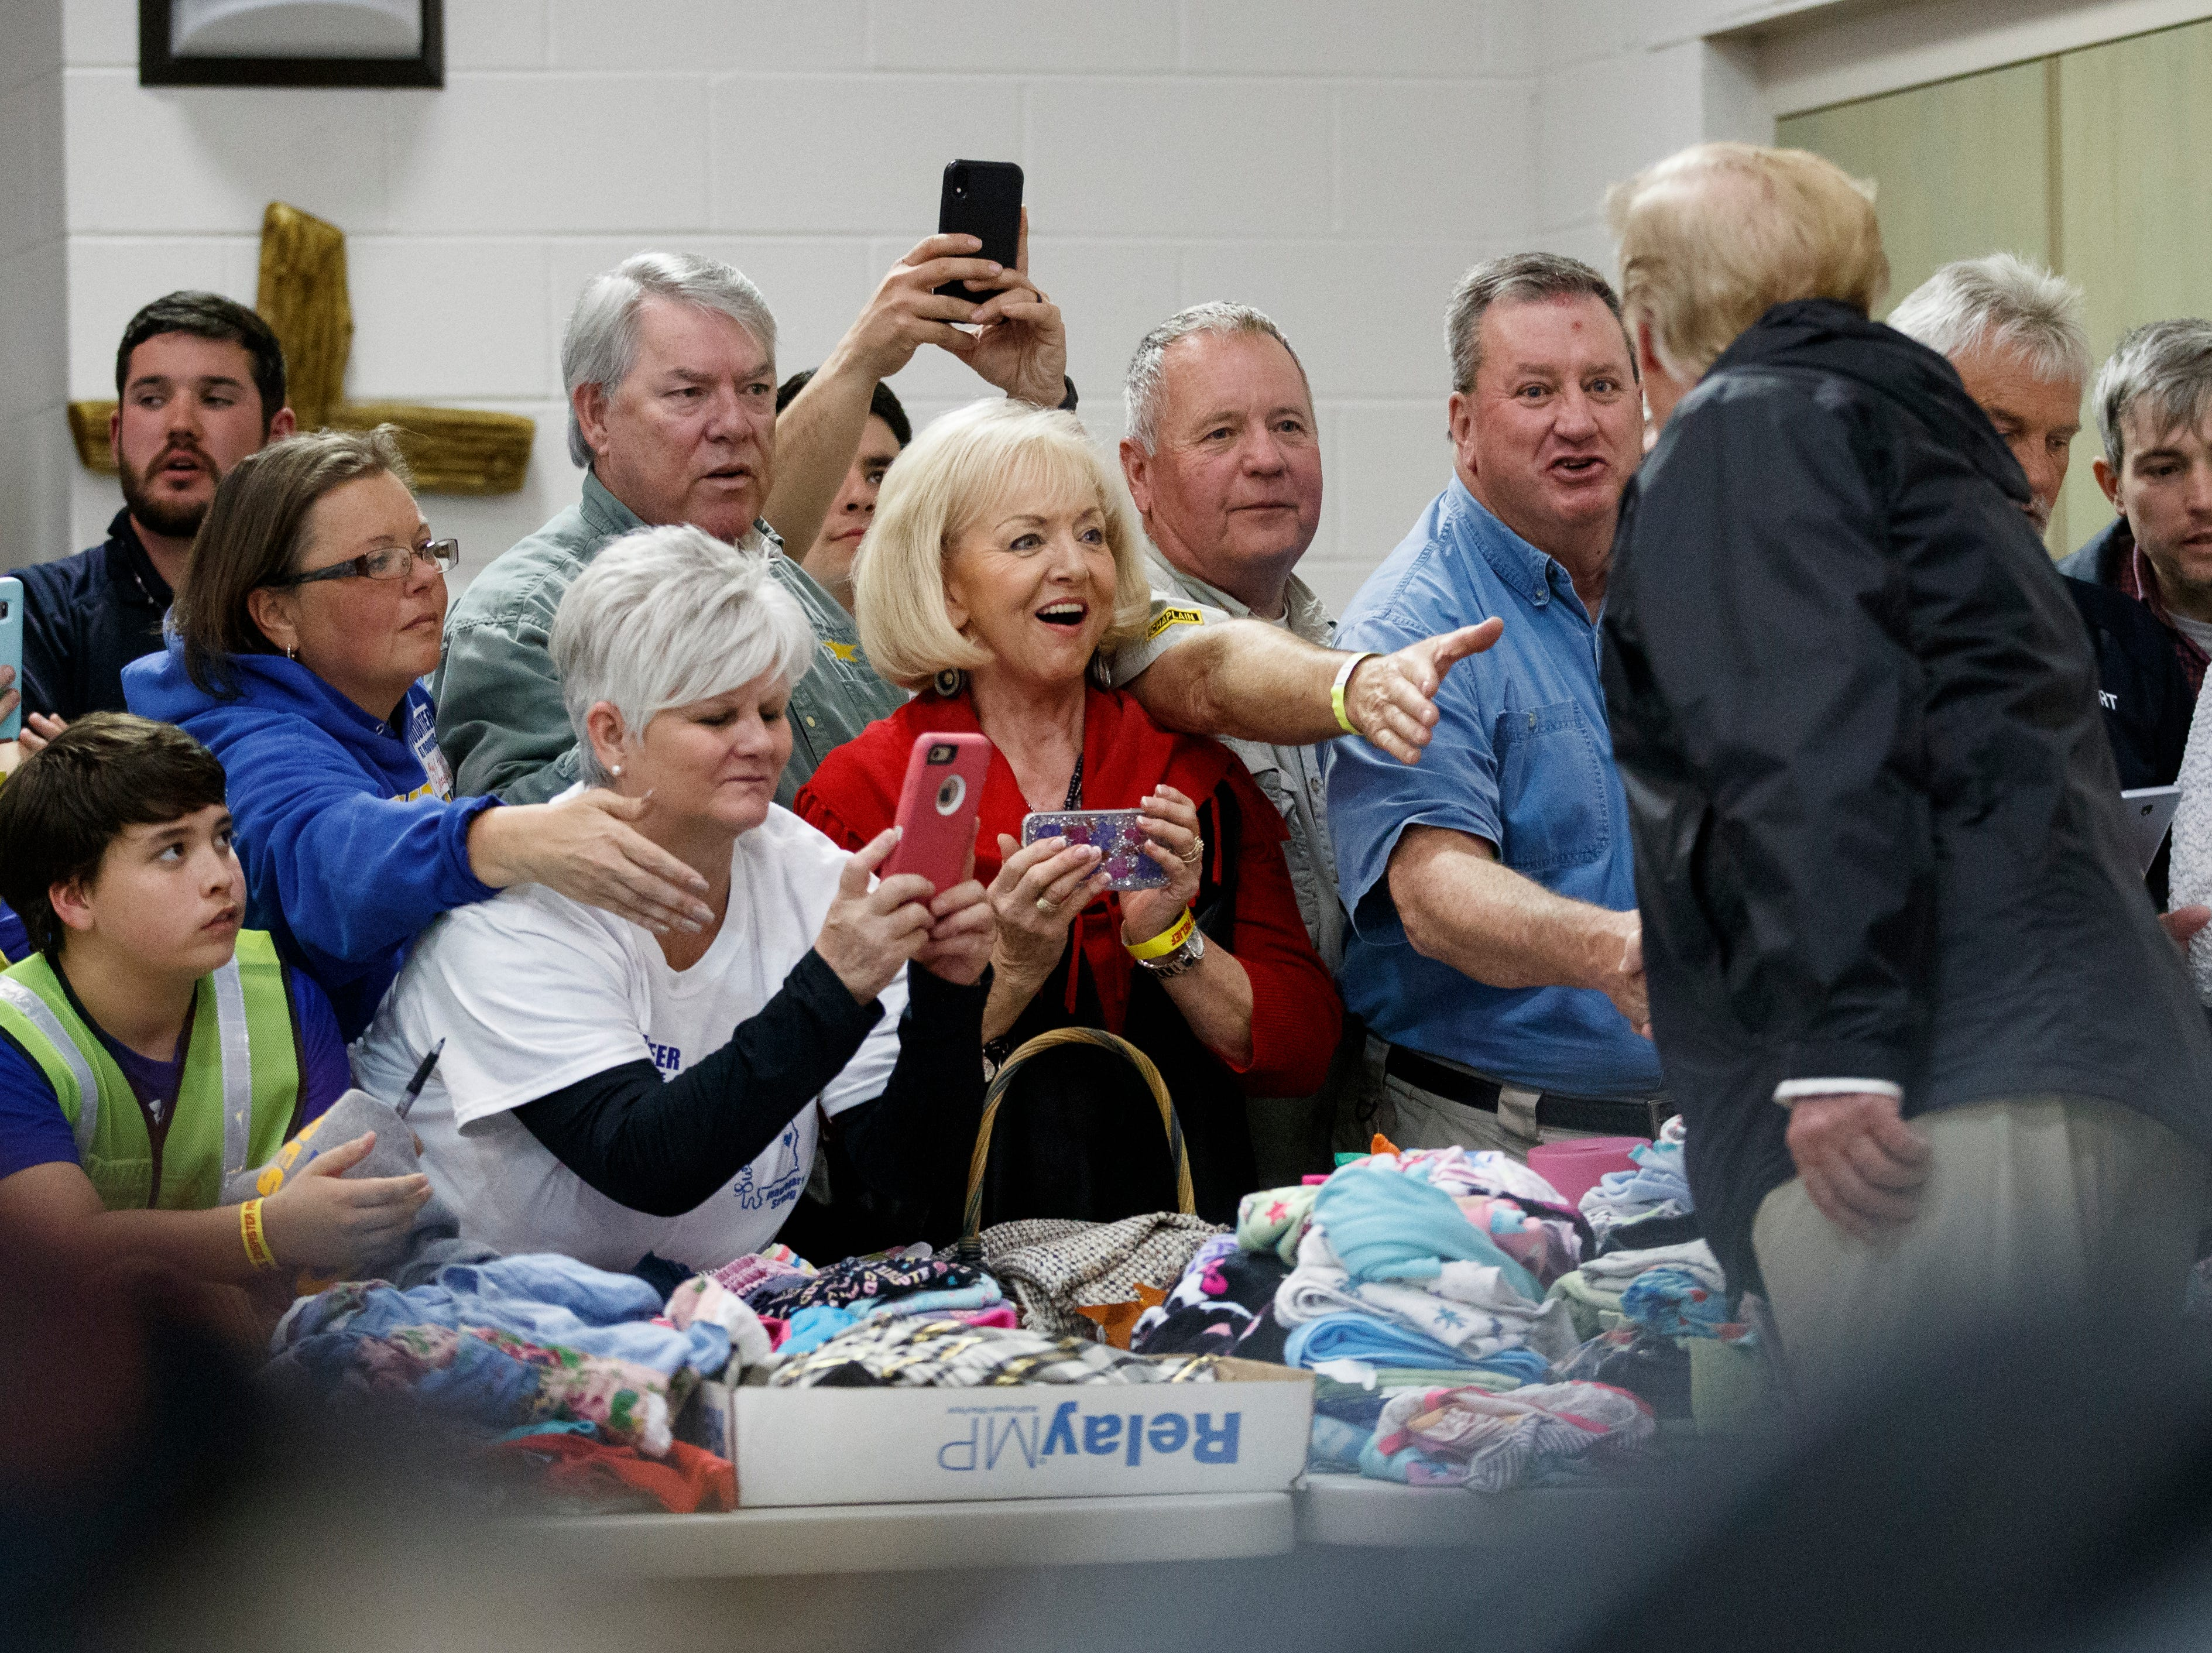 President Donald Trump greets people at Providence Baptist Church in Smiths Station, Ala., Friday, March 8, 2019.